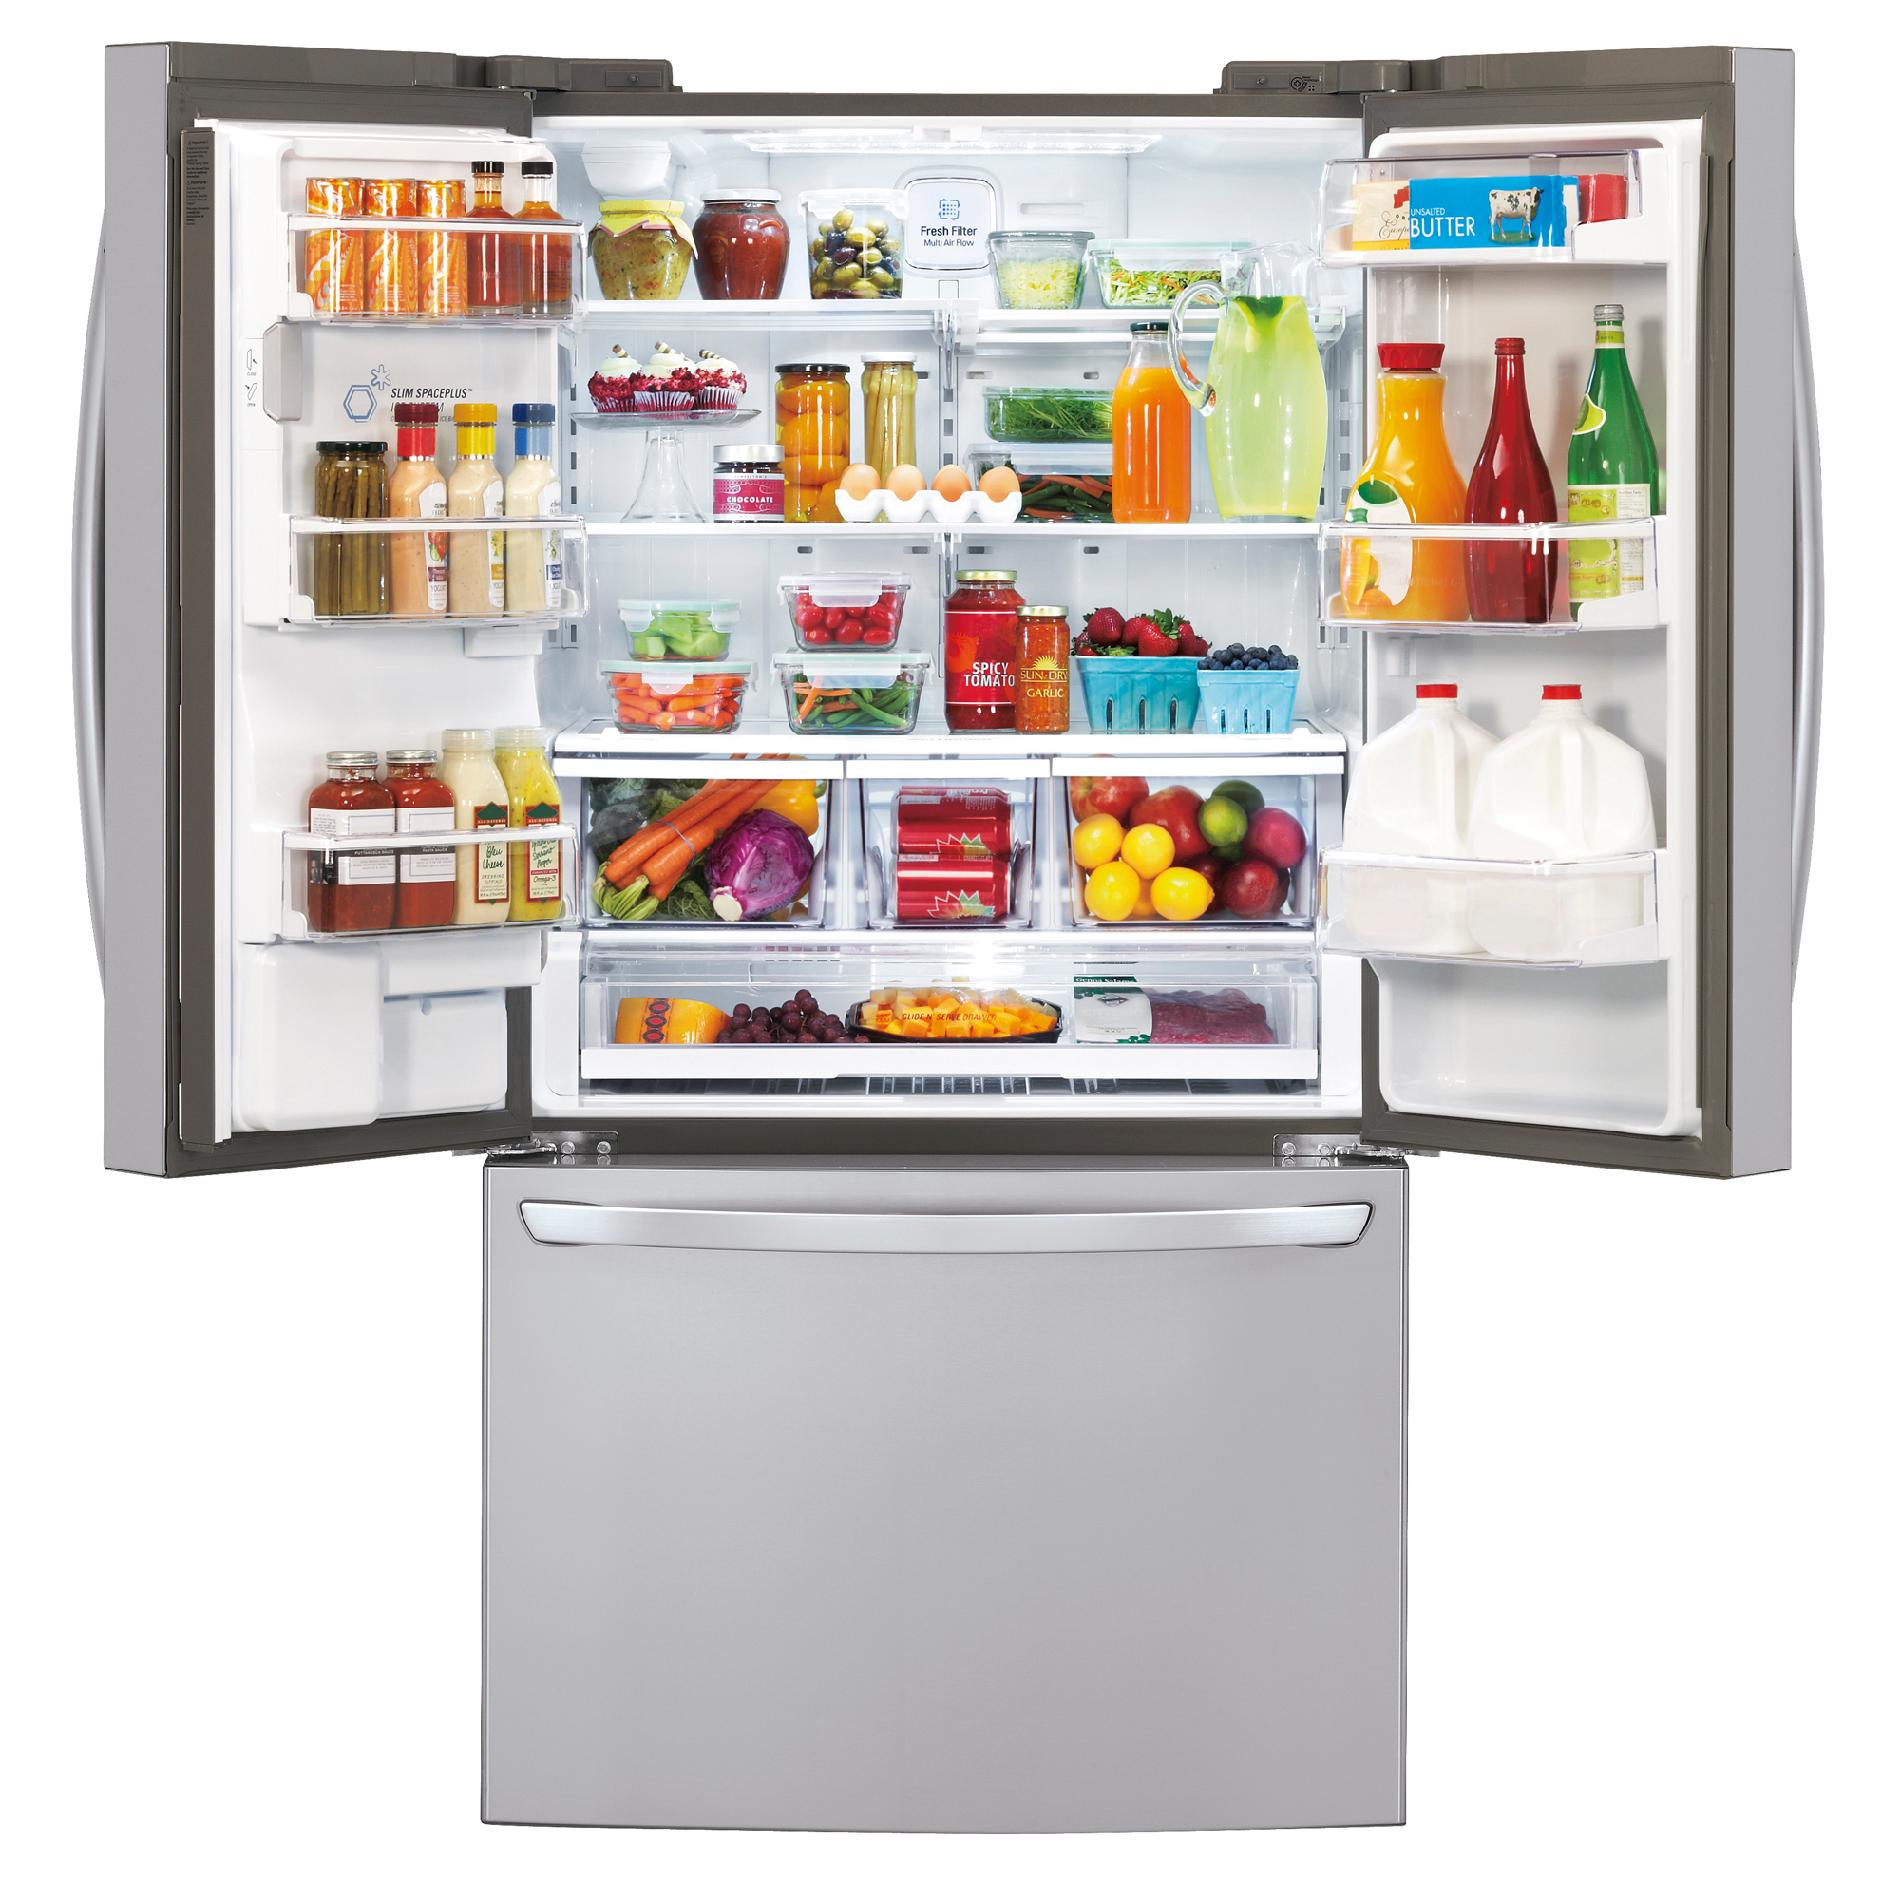 LG 29 cu. ft. French Door Bottom-Freezer Refrigerator w/ Dual Ice Makers - Stainless Steel